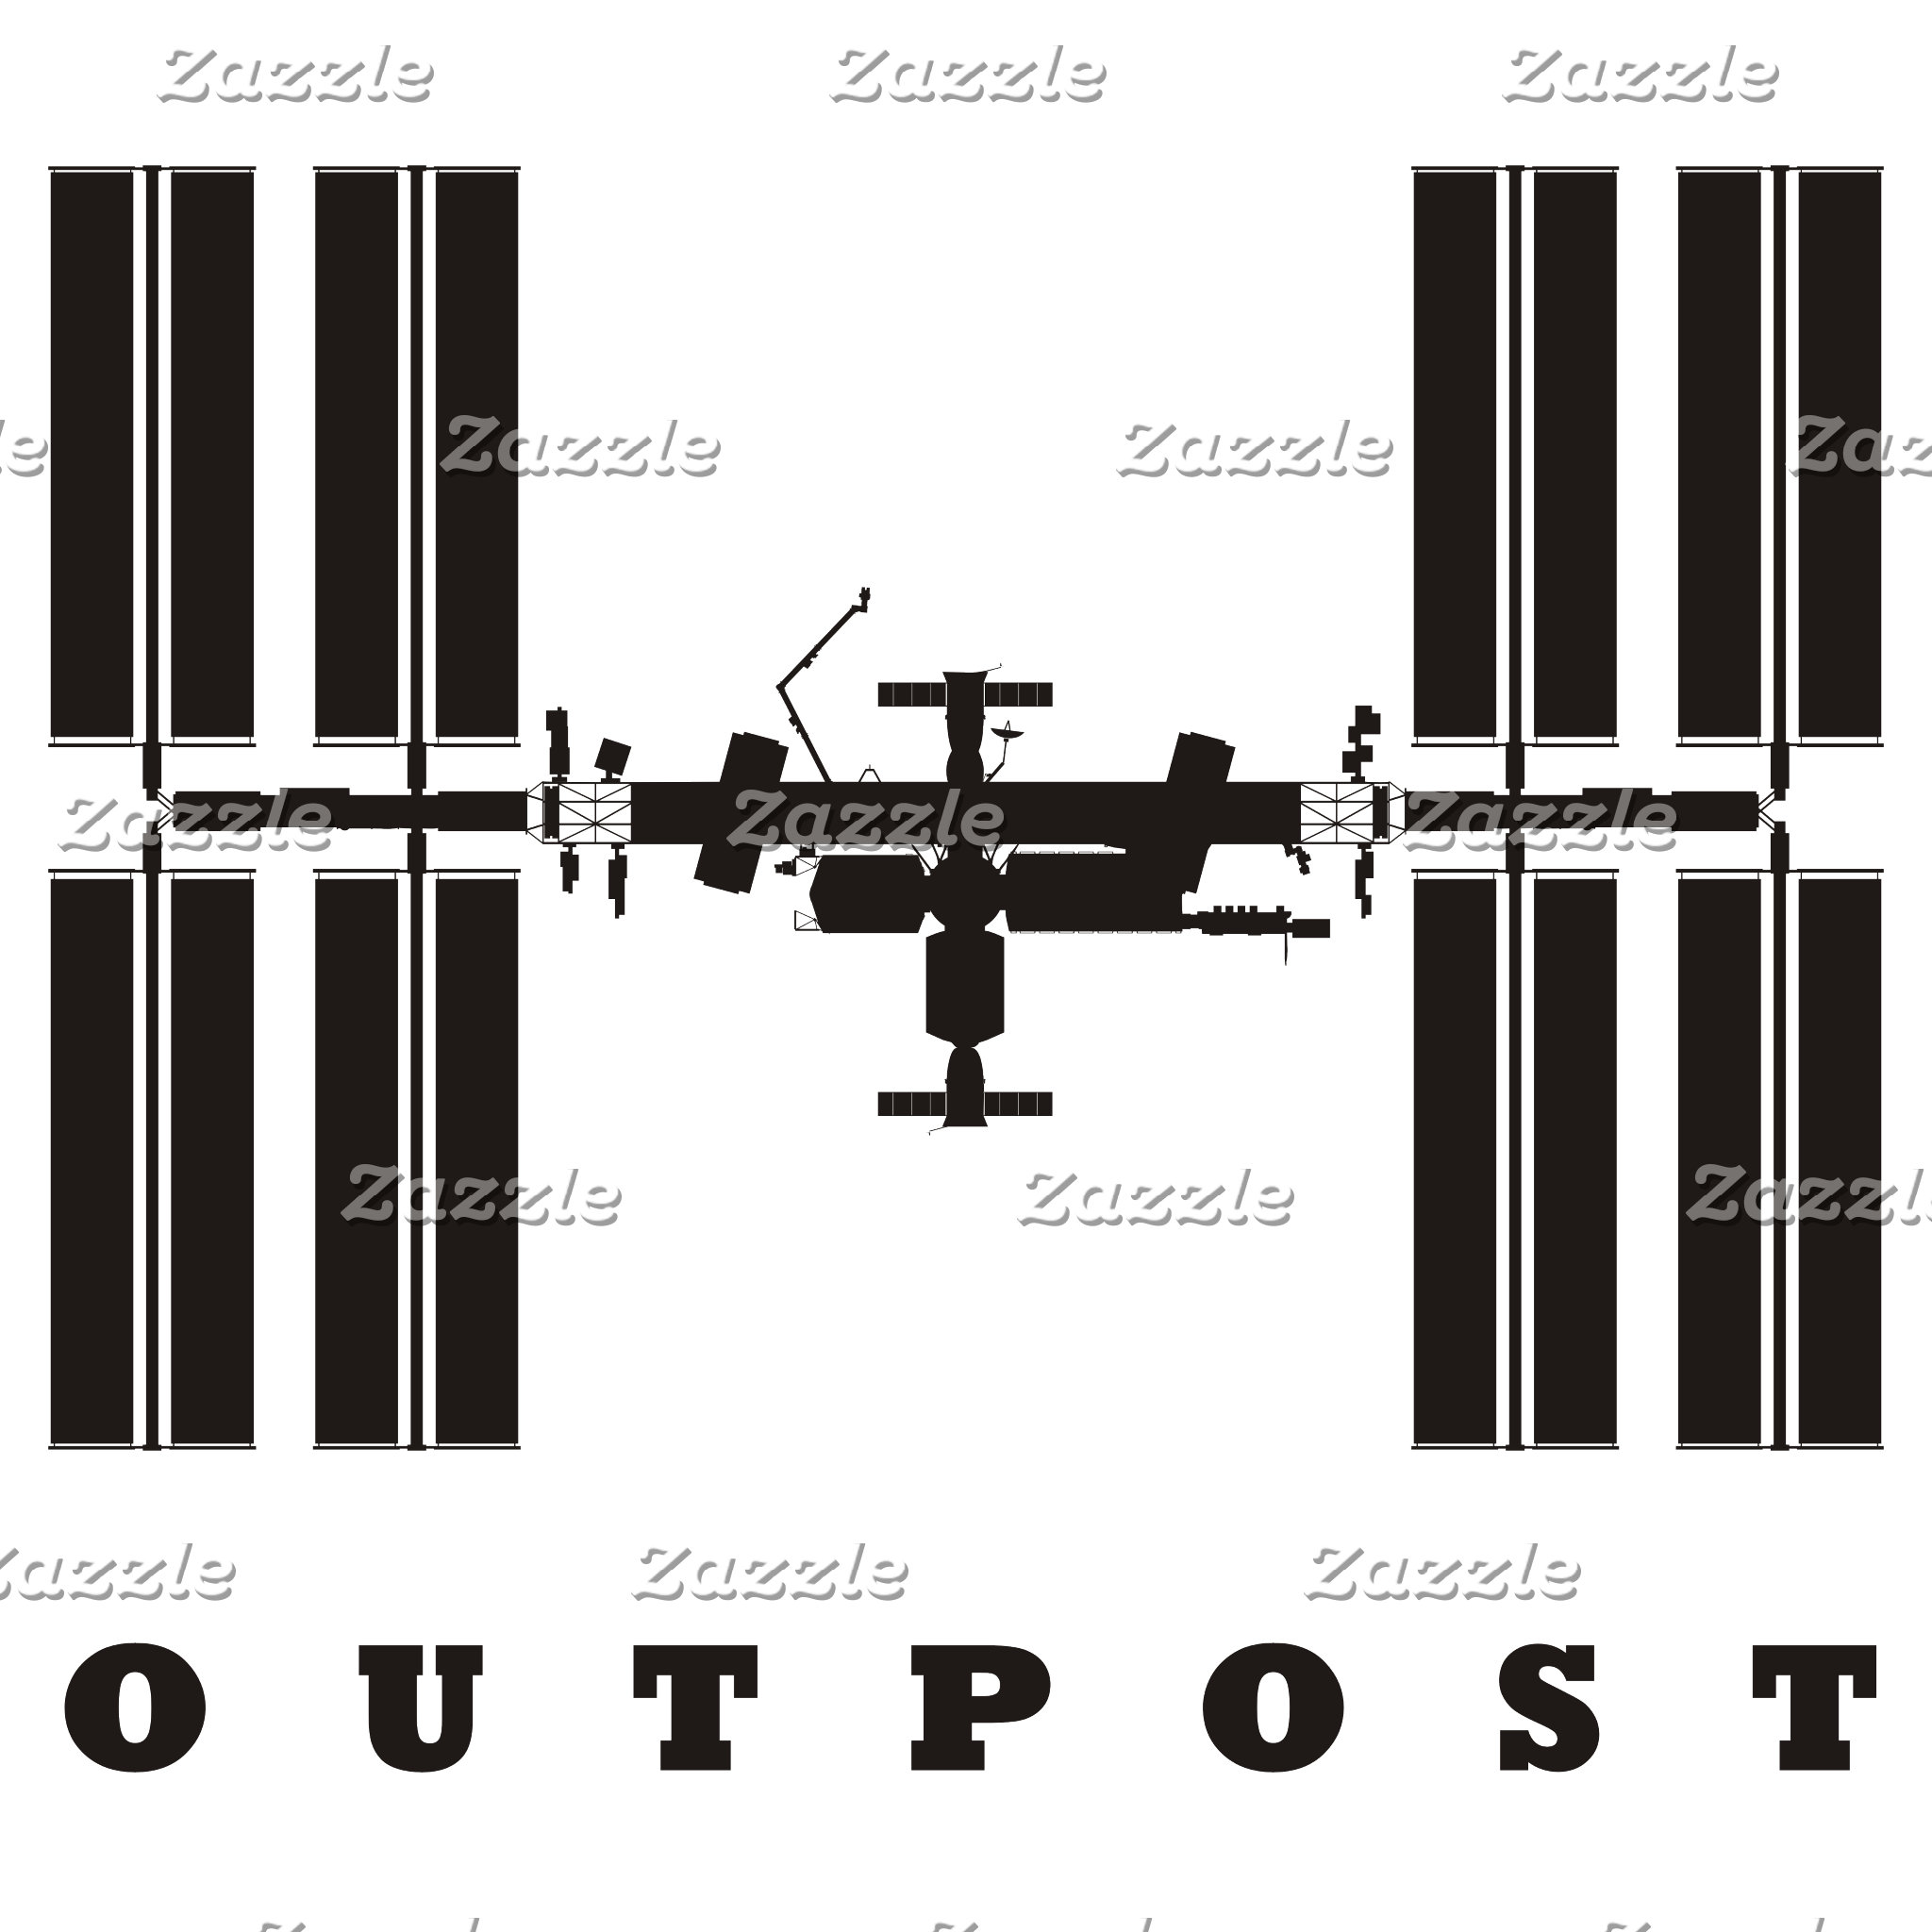 ISS / Outpost